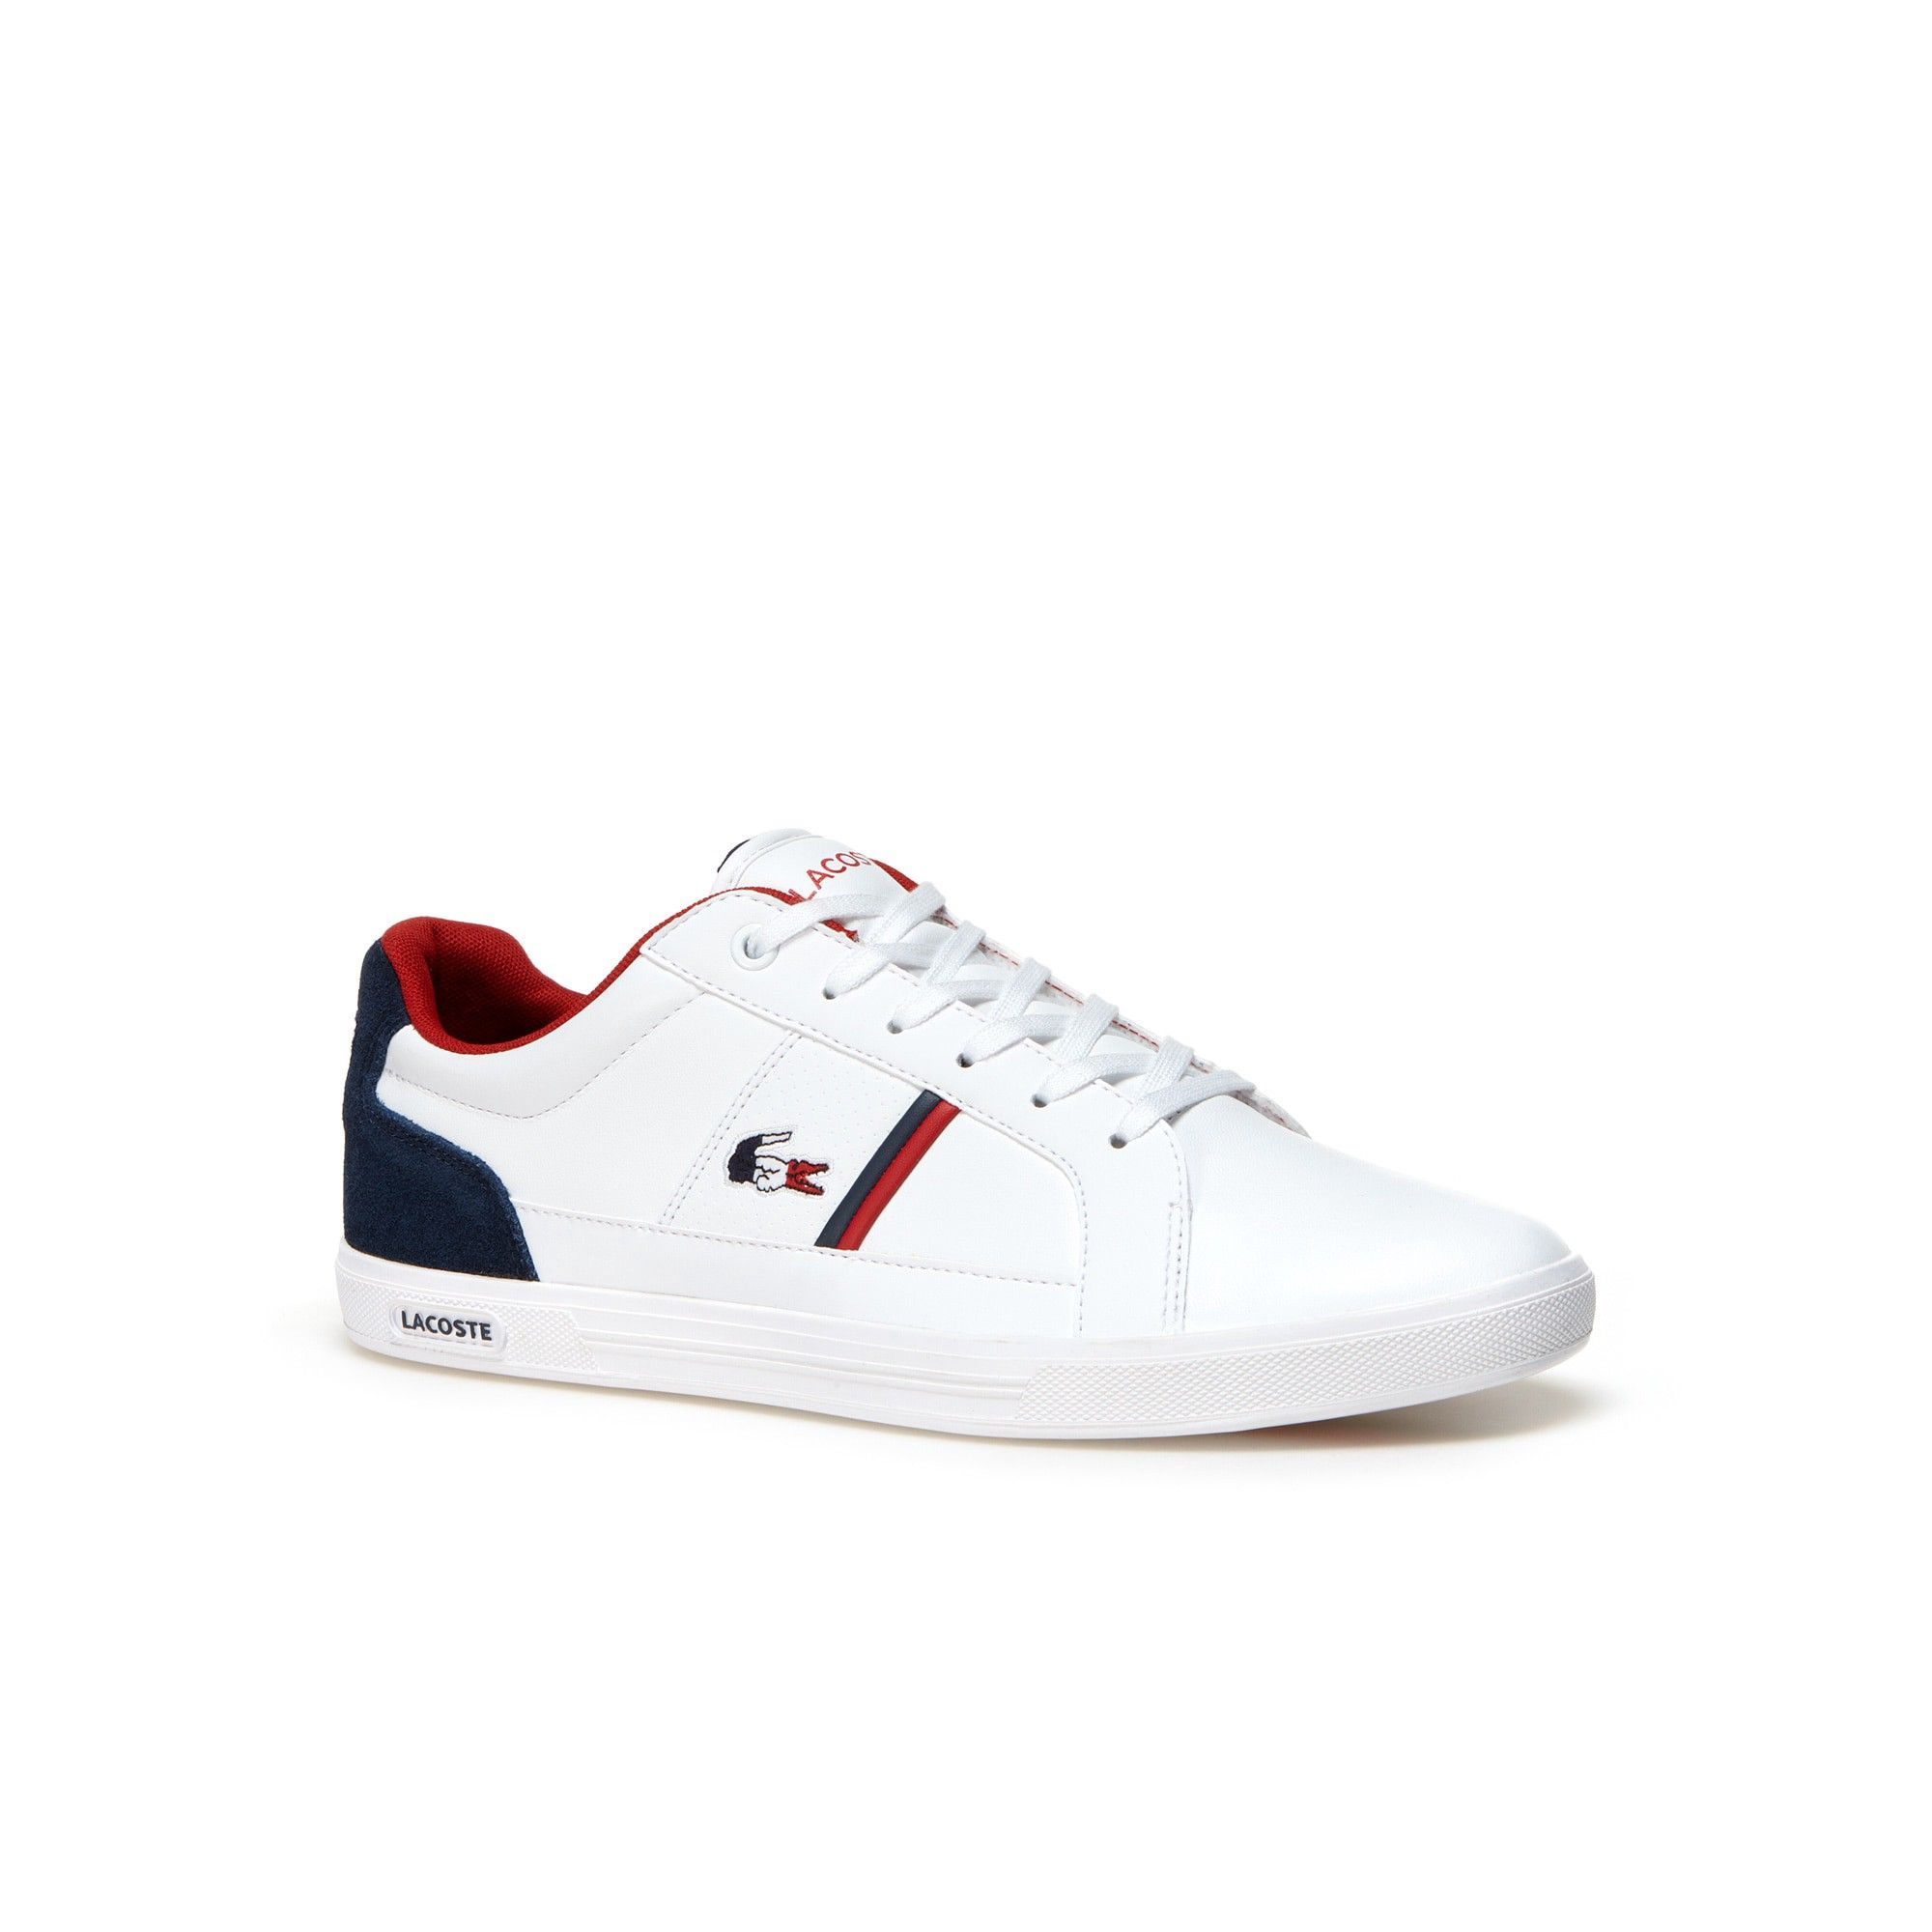 Lacoste Men S Europa Leather Sneakers White Navy Modesens Sneakers Men Fashion Lacoste Shoes Mens Lacoste Shoes